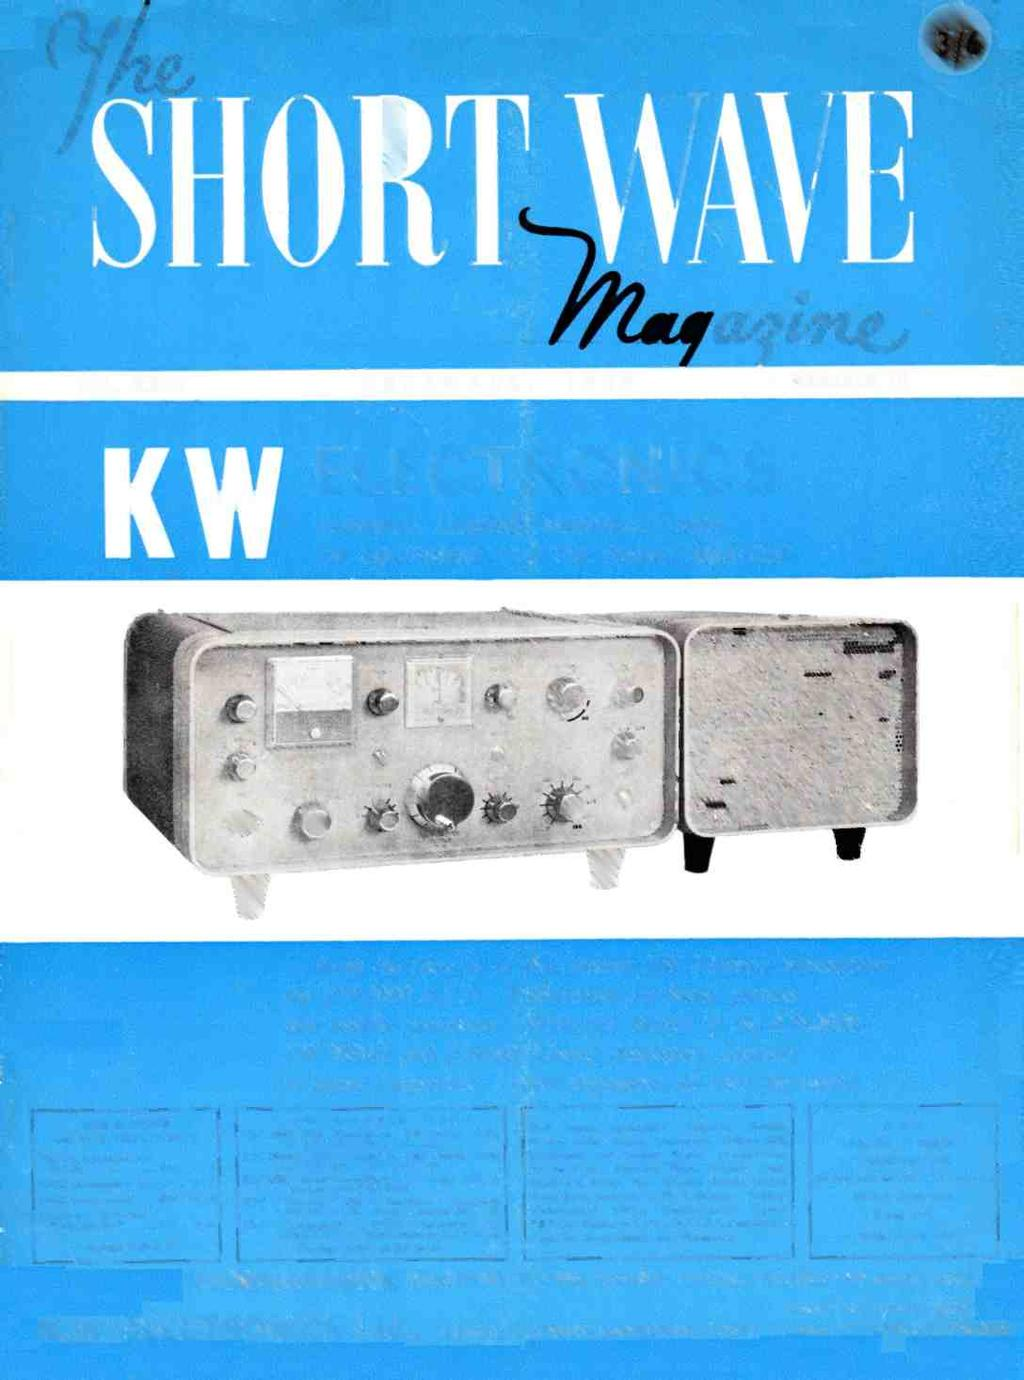 Kwelectronics Europes Leading Manufacturer Of Equipment For The Am Cw Ham Bands Transmitter Vol Xxi I December 196 5 Number 10